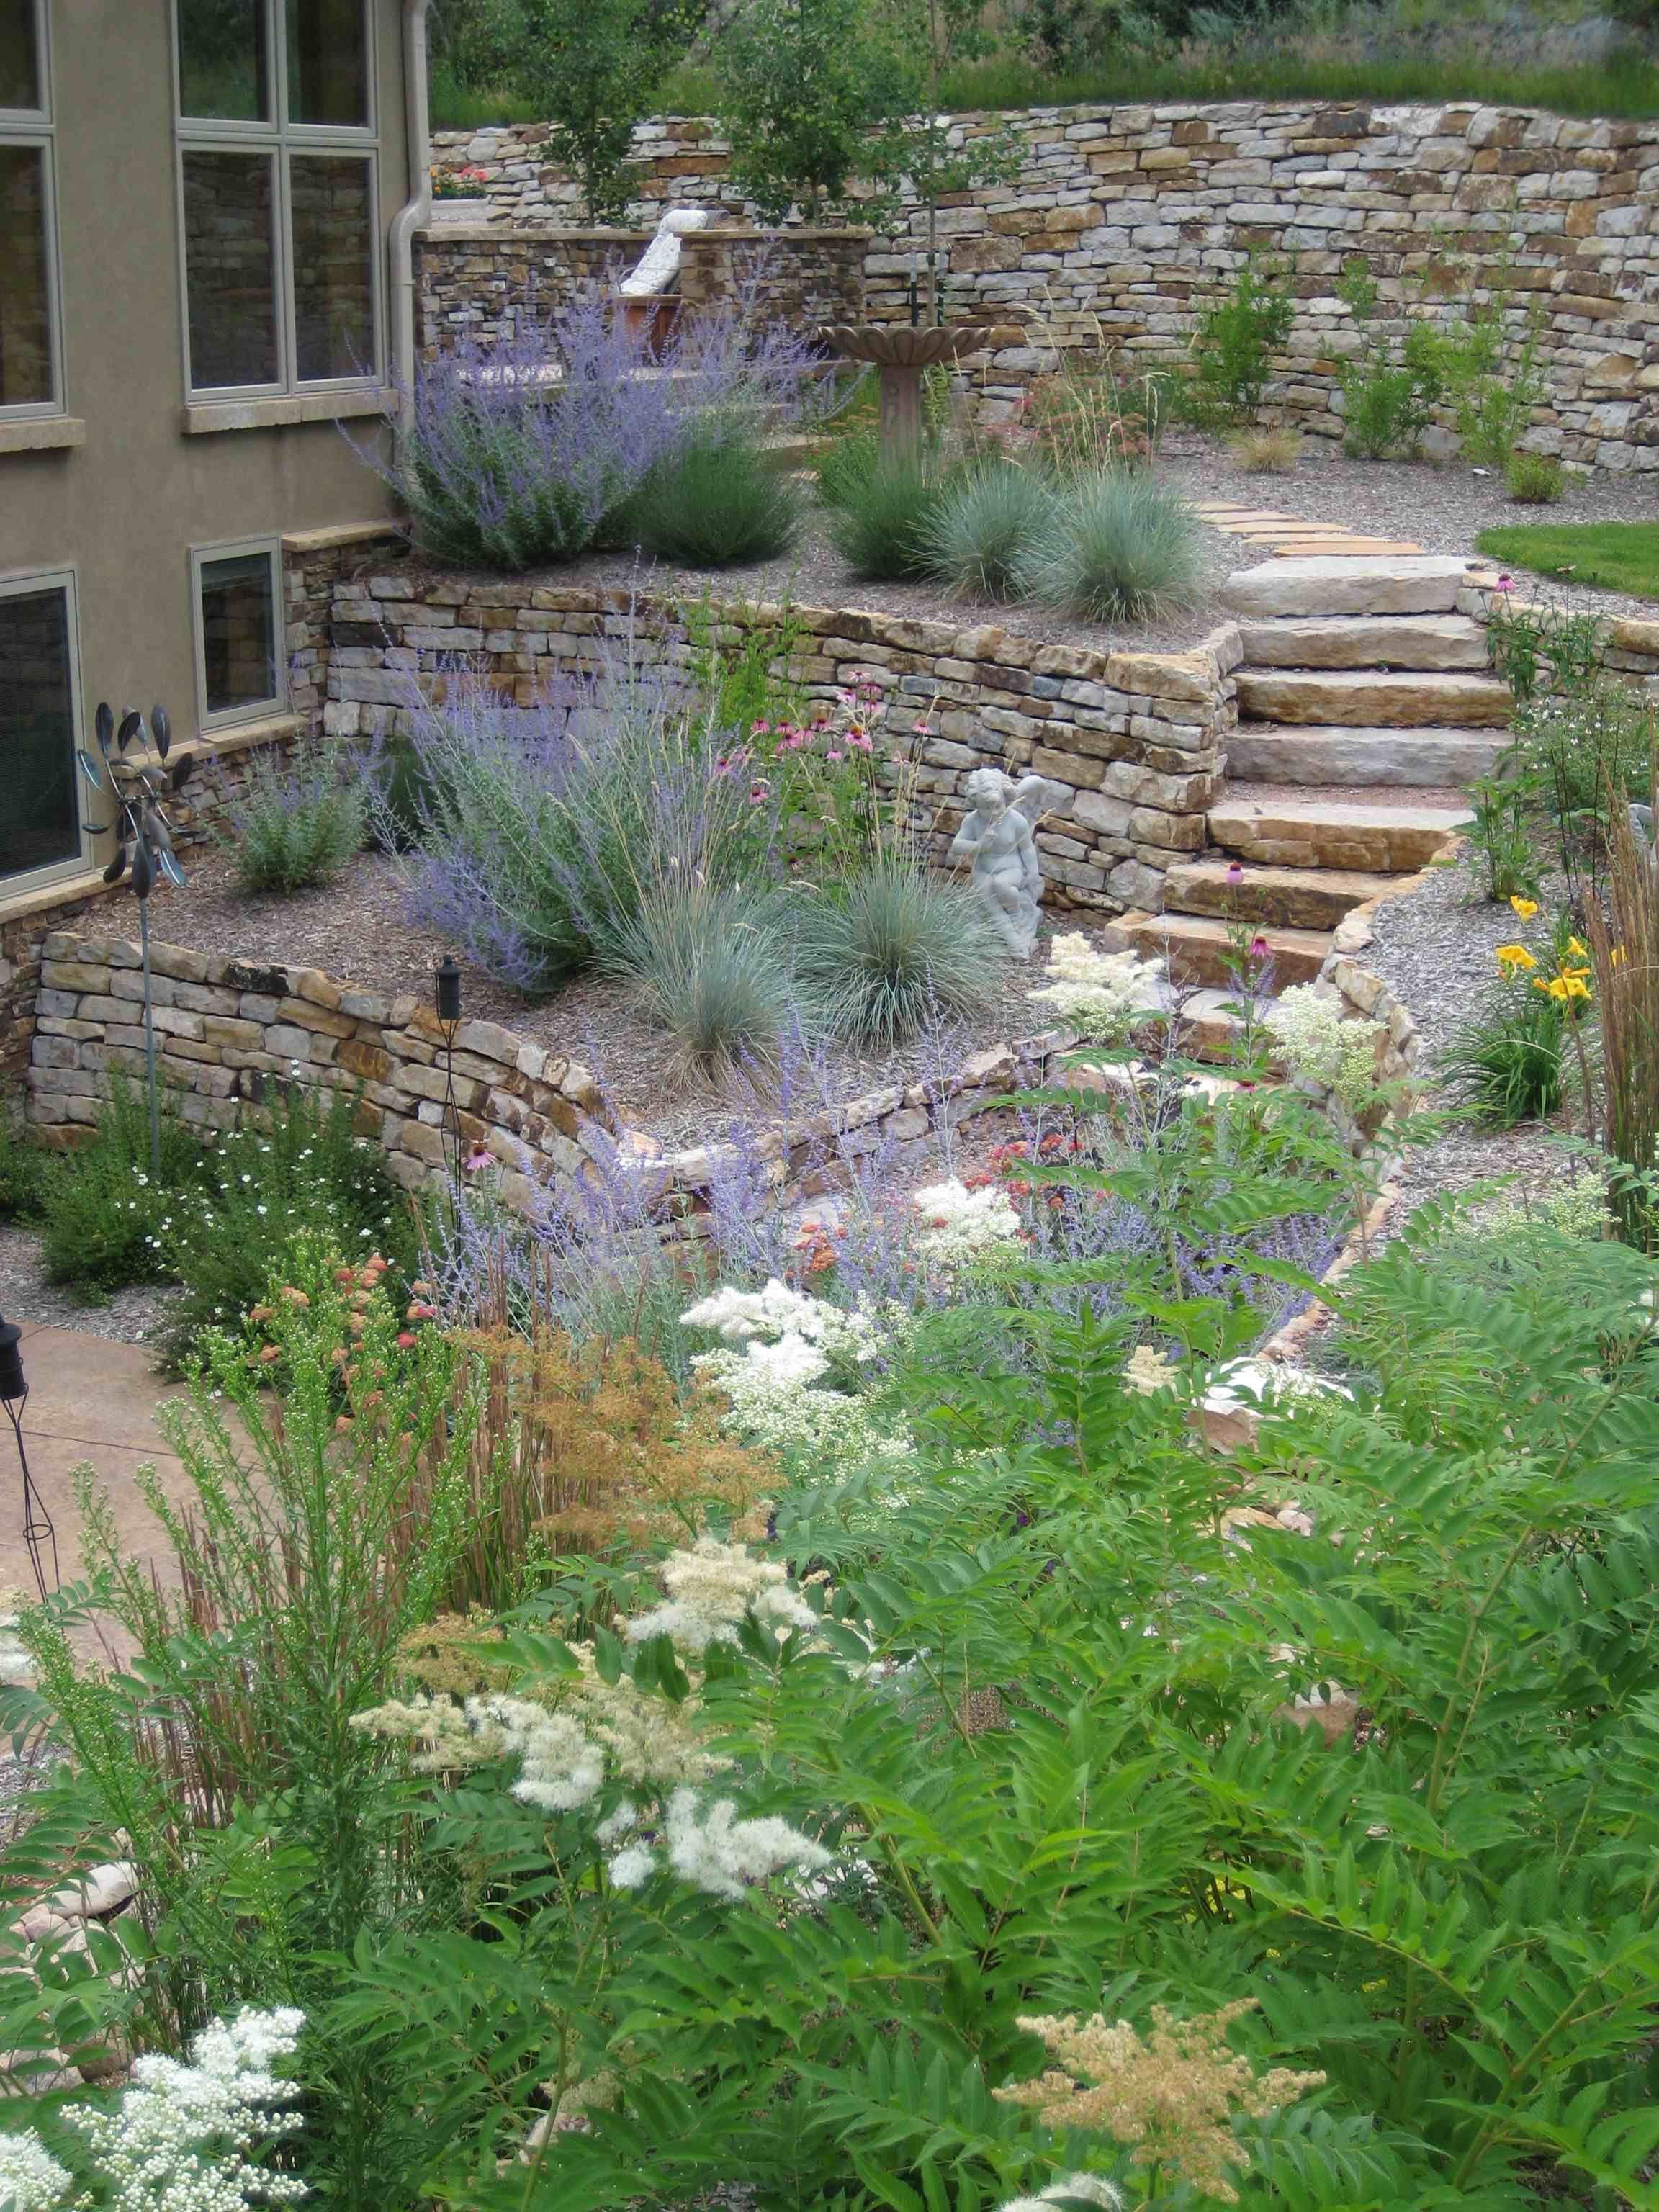 Hanggarten Terraced Garden Russian Sage Works Well With Stone